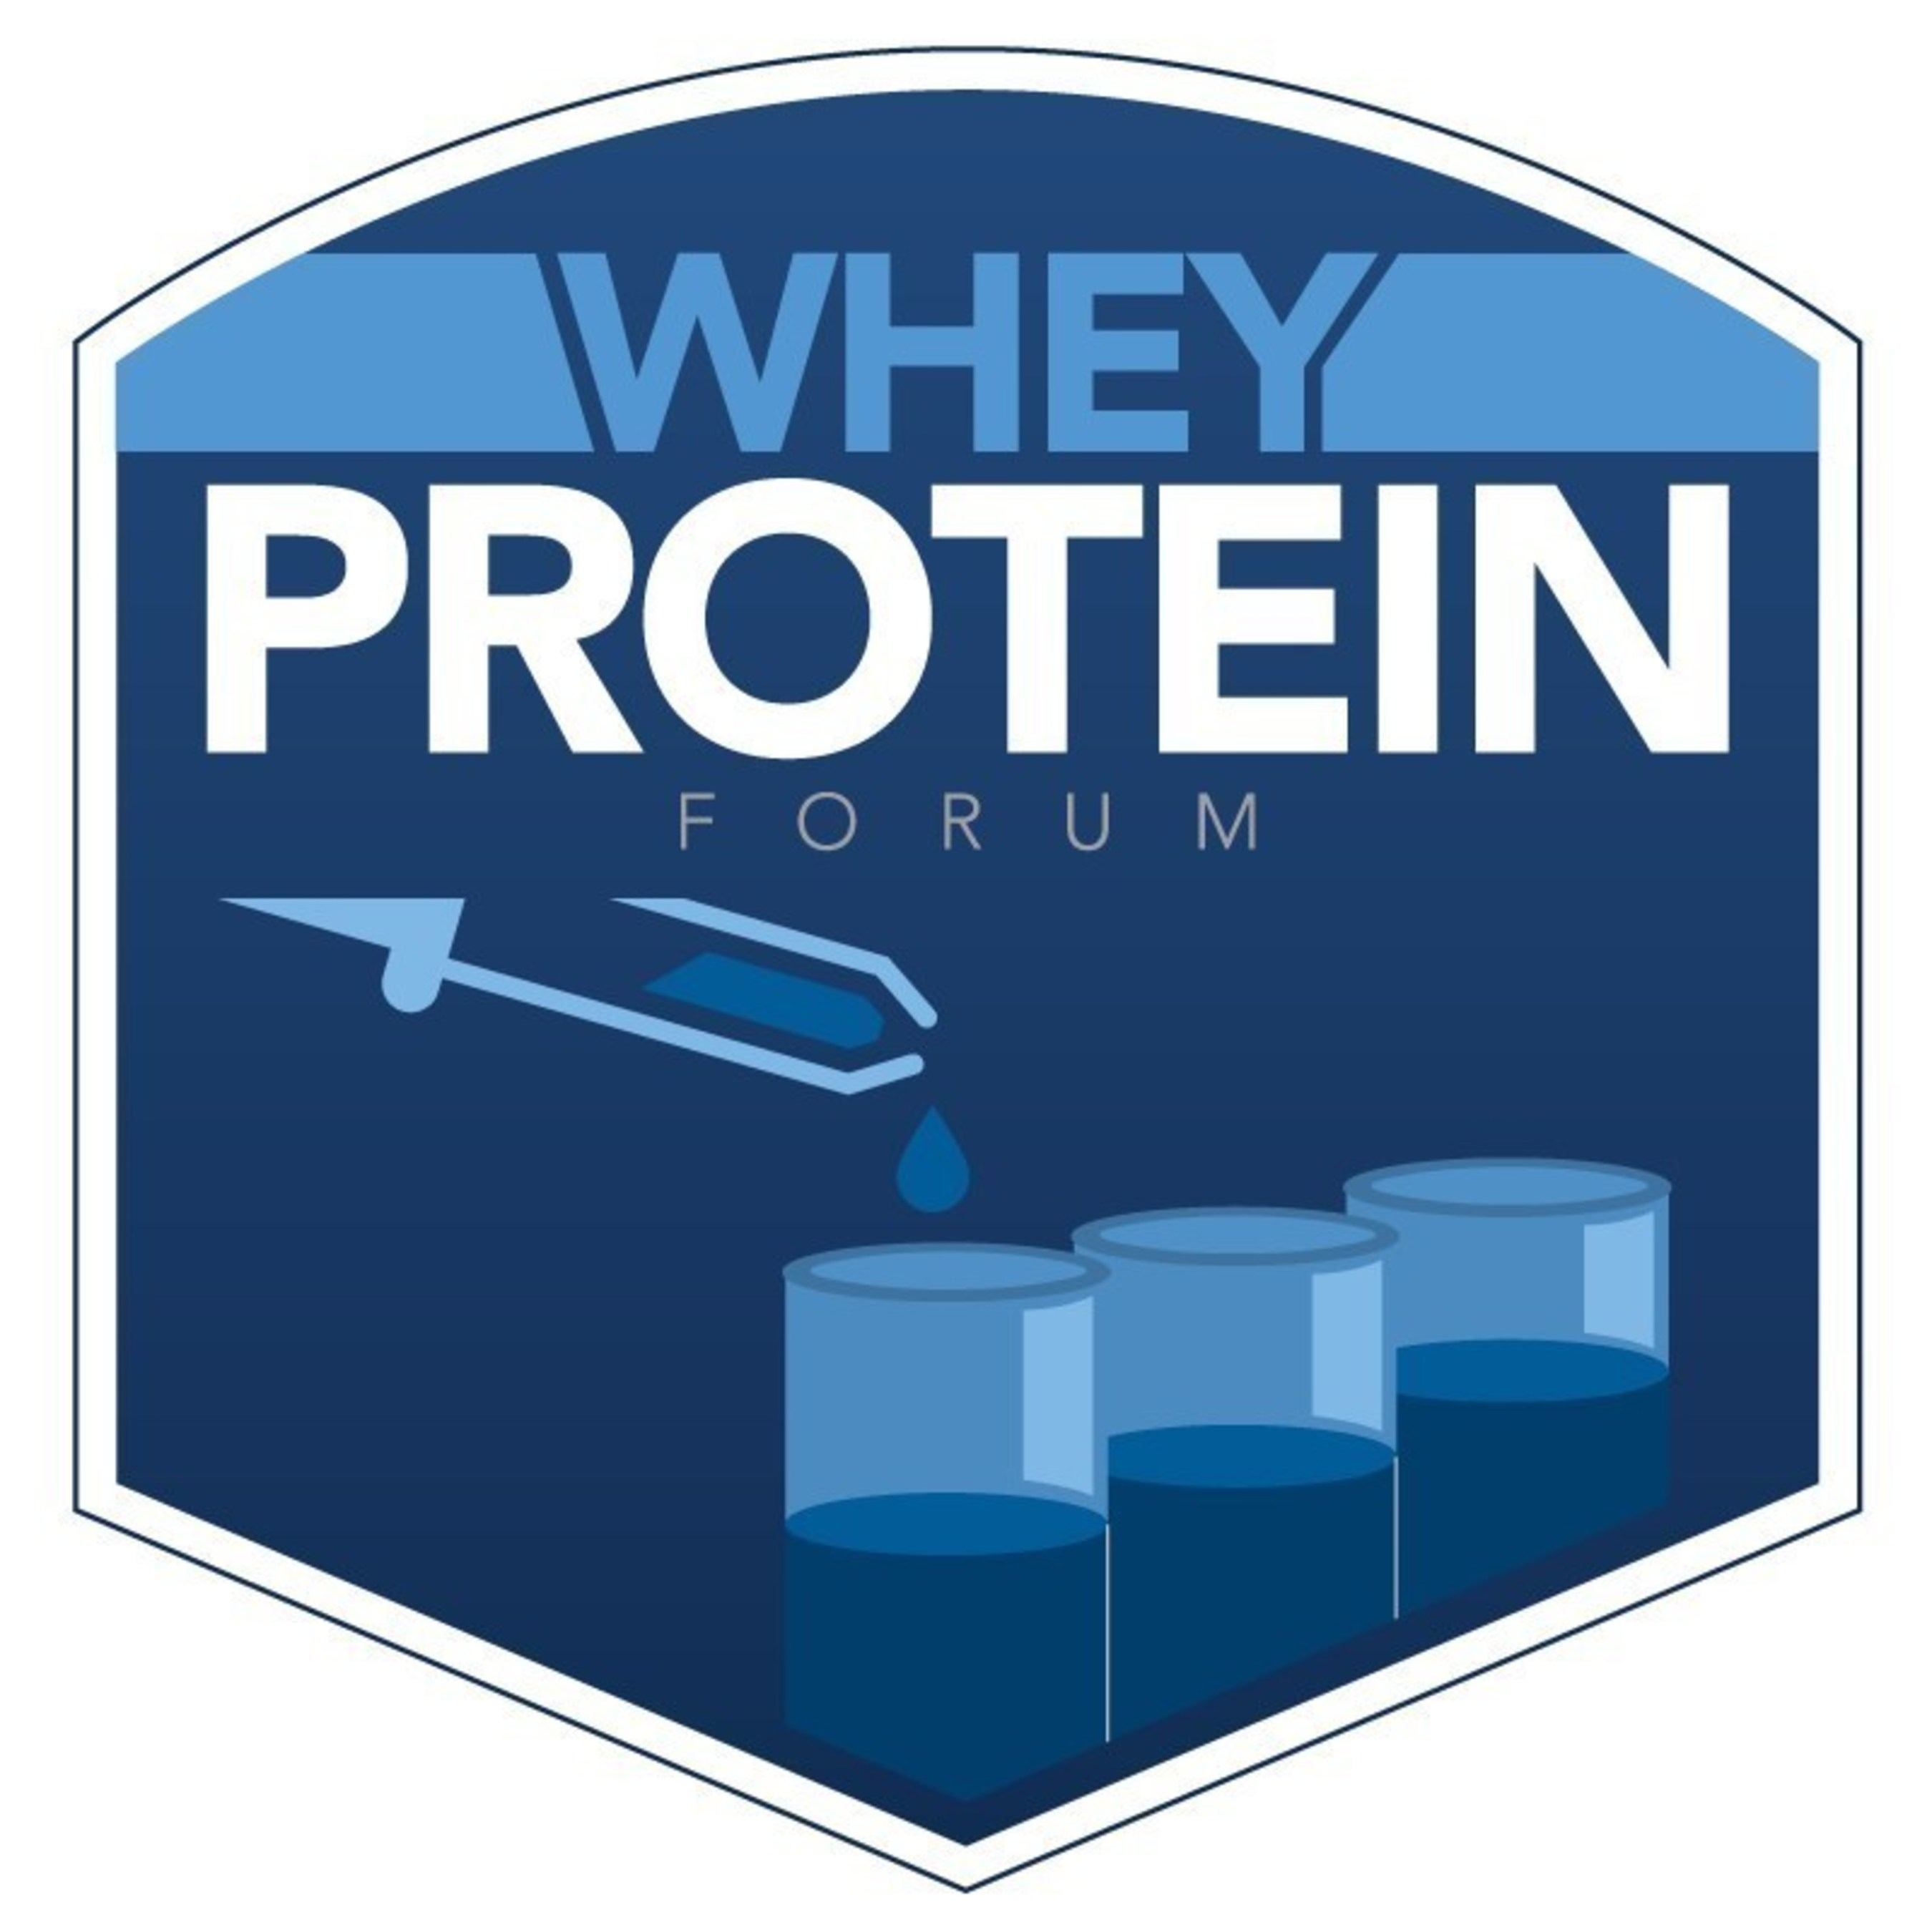 Agropur is pleased to host the Whey Protein Forum in Geneva on May 11.